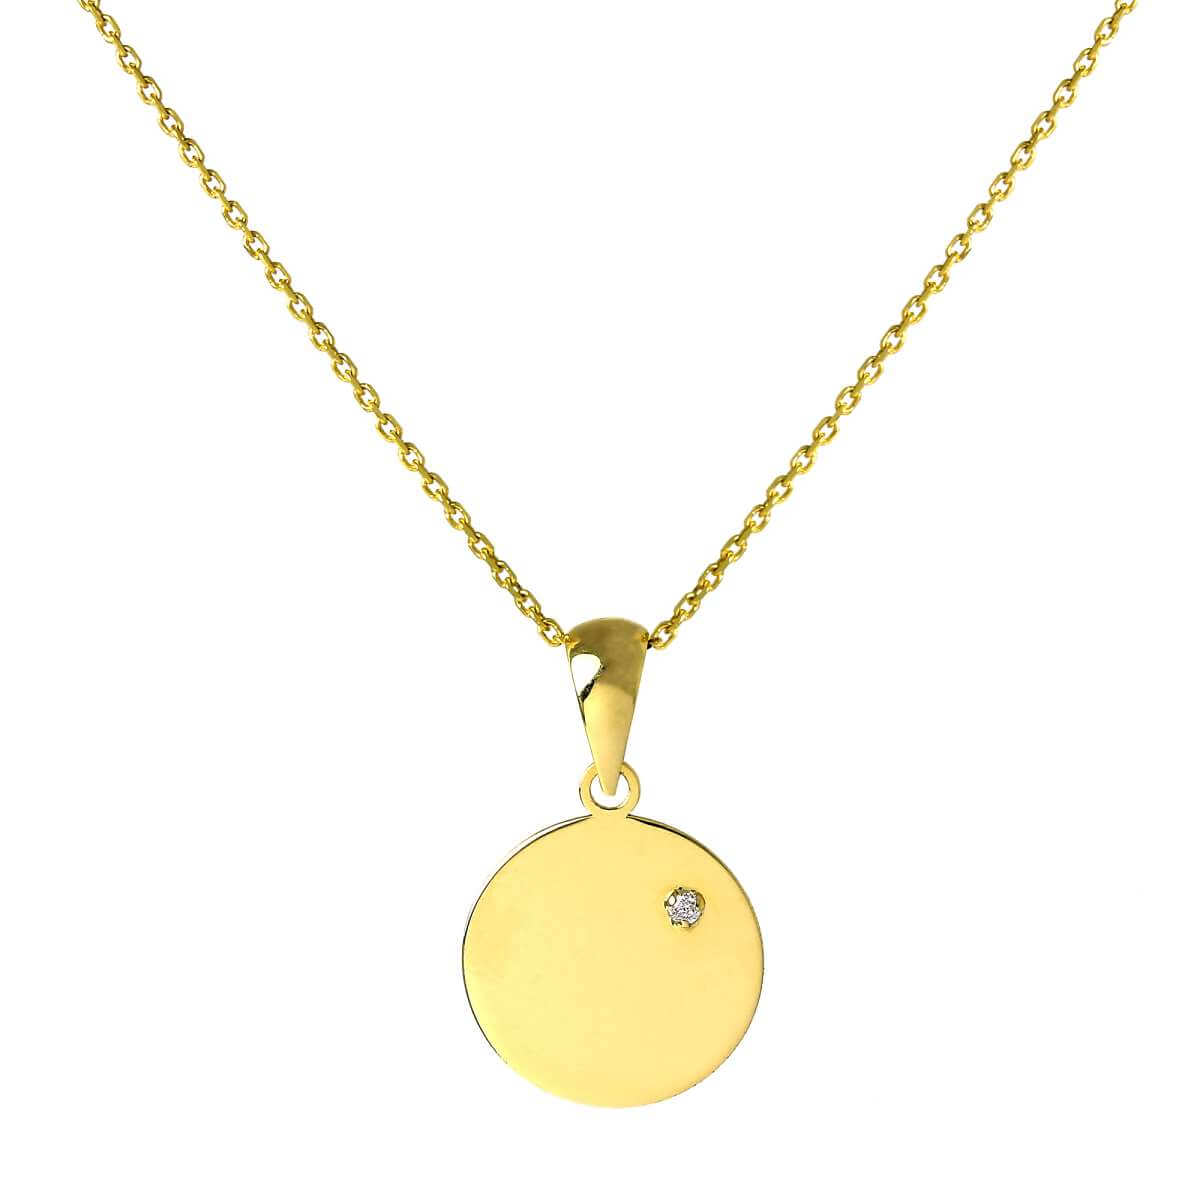 9ct Gold Engravable Round Pendant with Tiny CZ Crystal on 16 - 20 Inch Chain